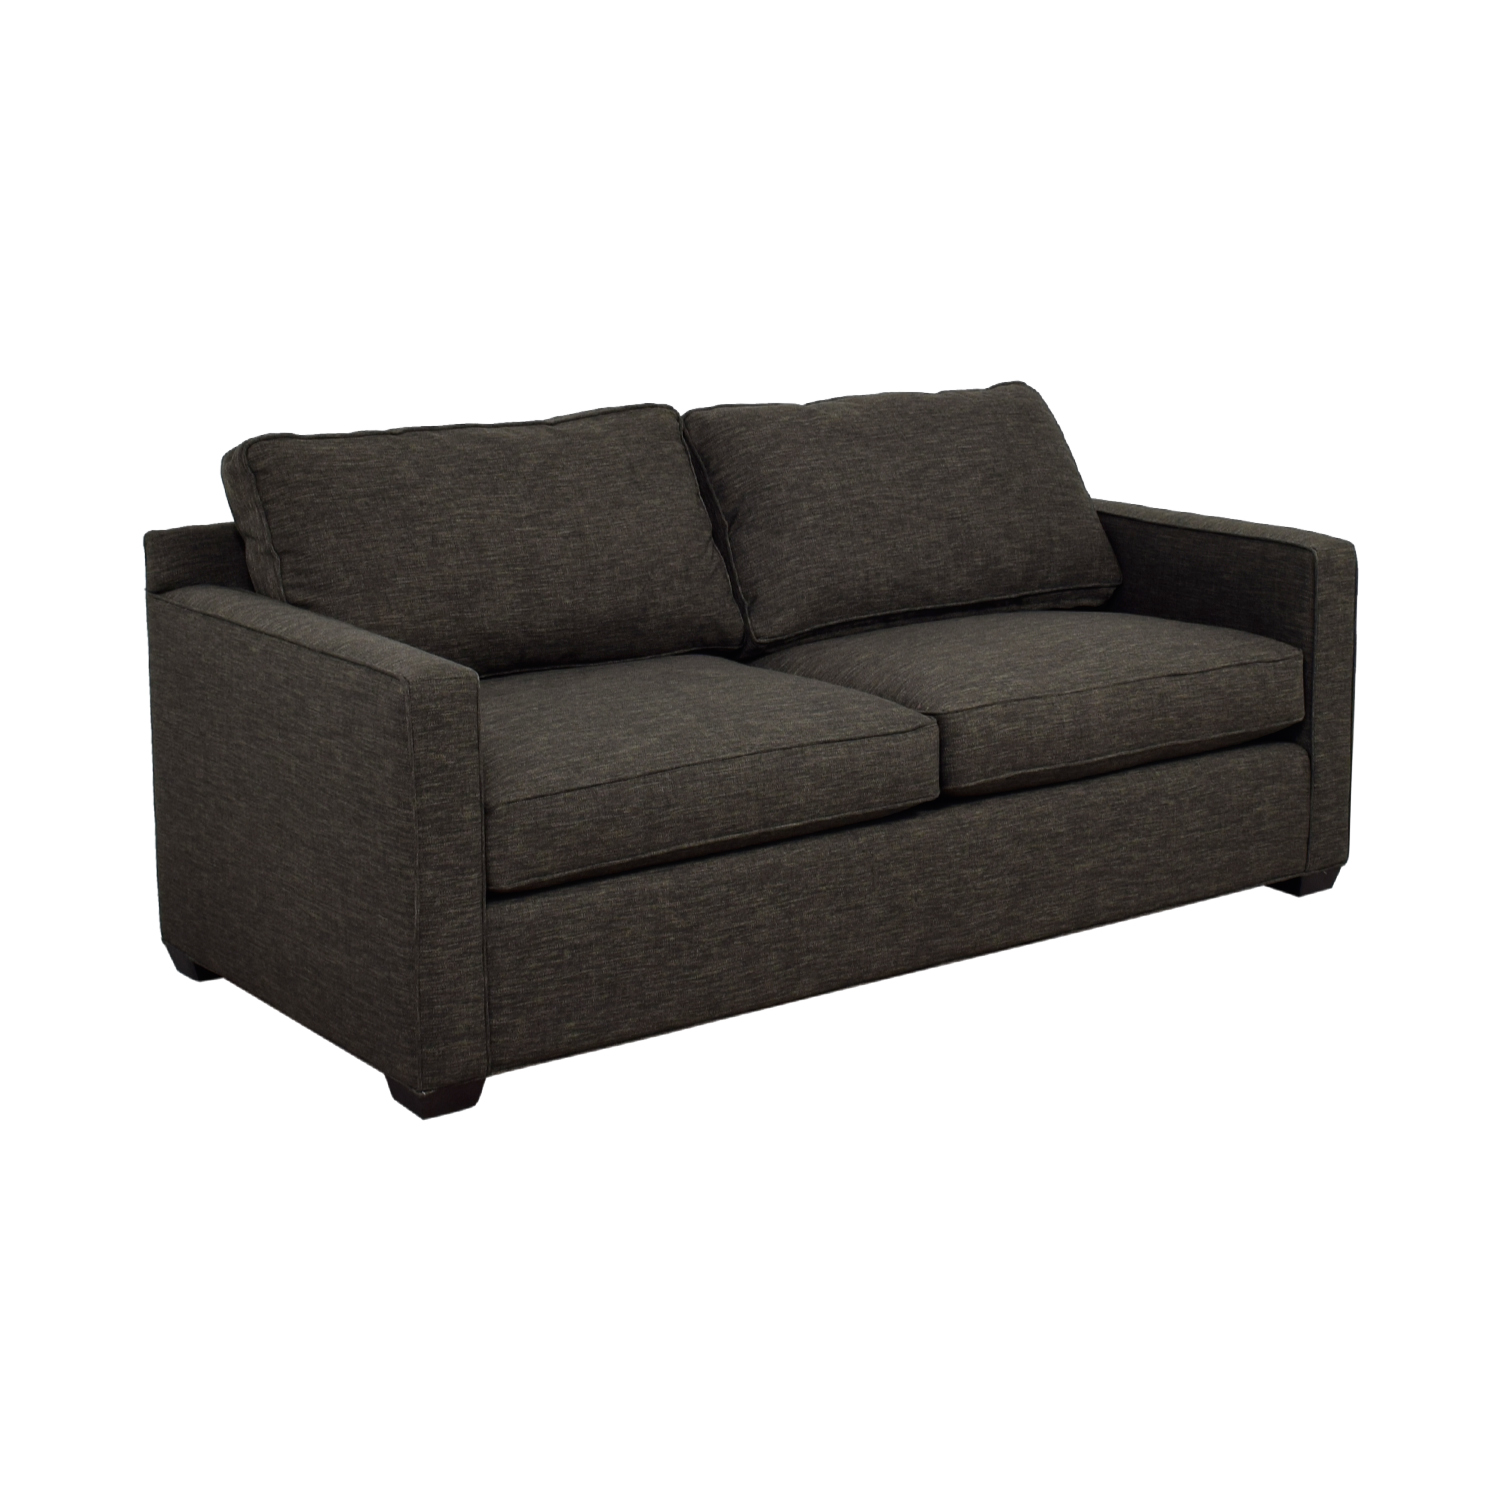 crate and barrel lounge sofa pilling how to measure a for upholstery 60 off davis charcoal two